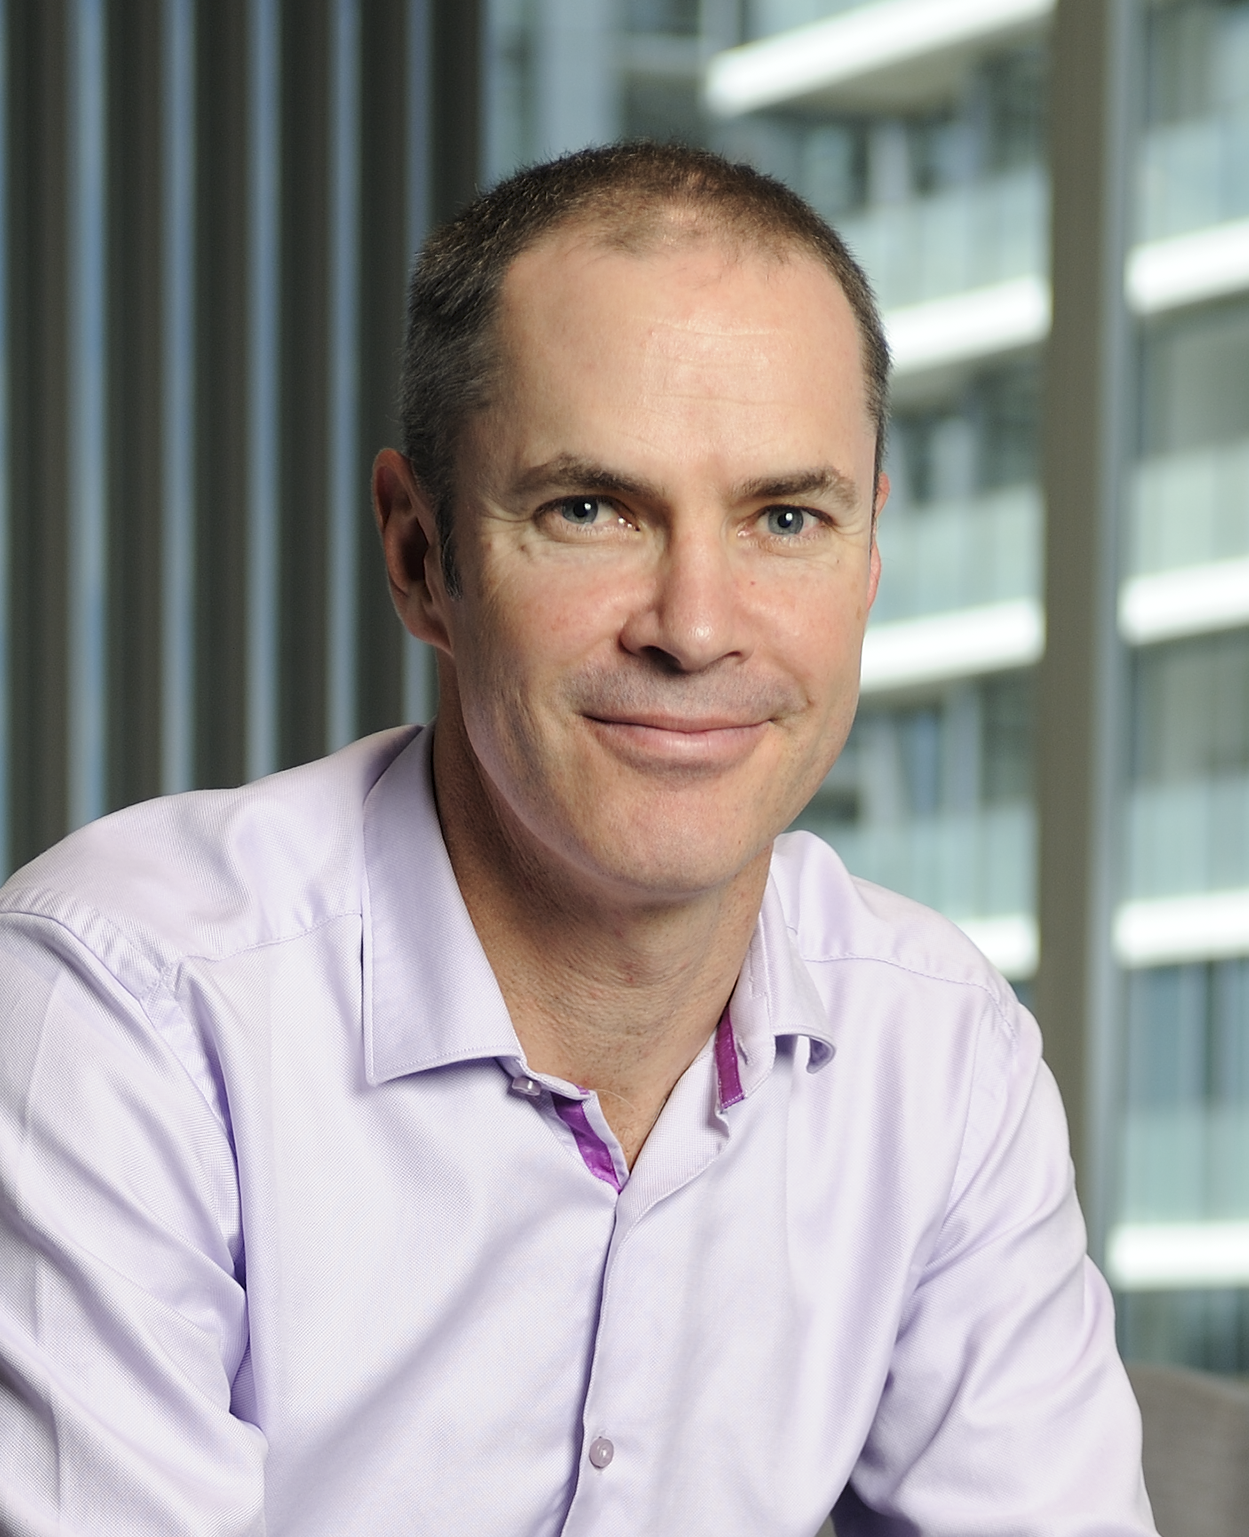 Richard Enthoven, HOLLARD AUSTRALIA